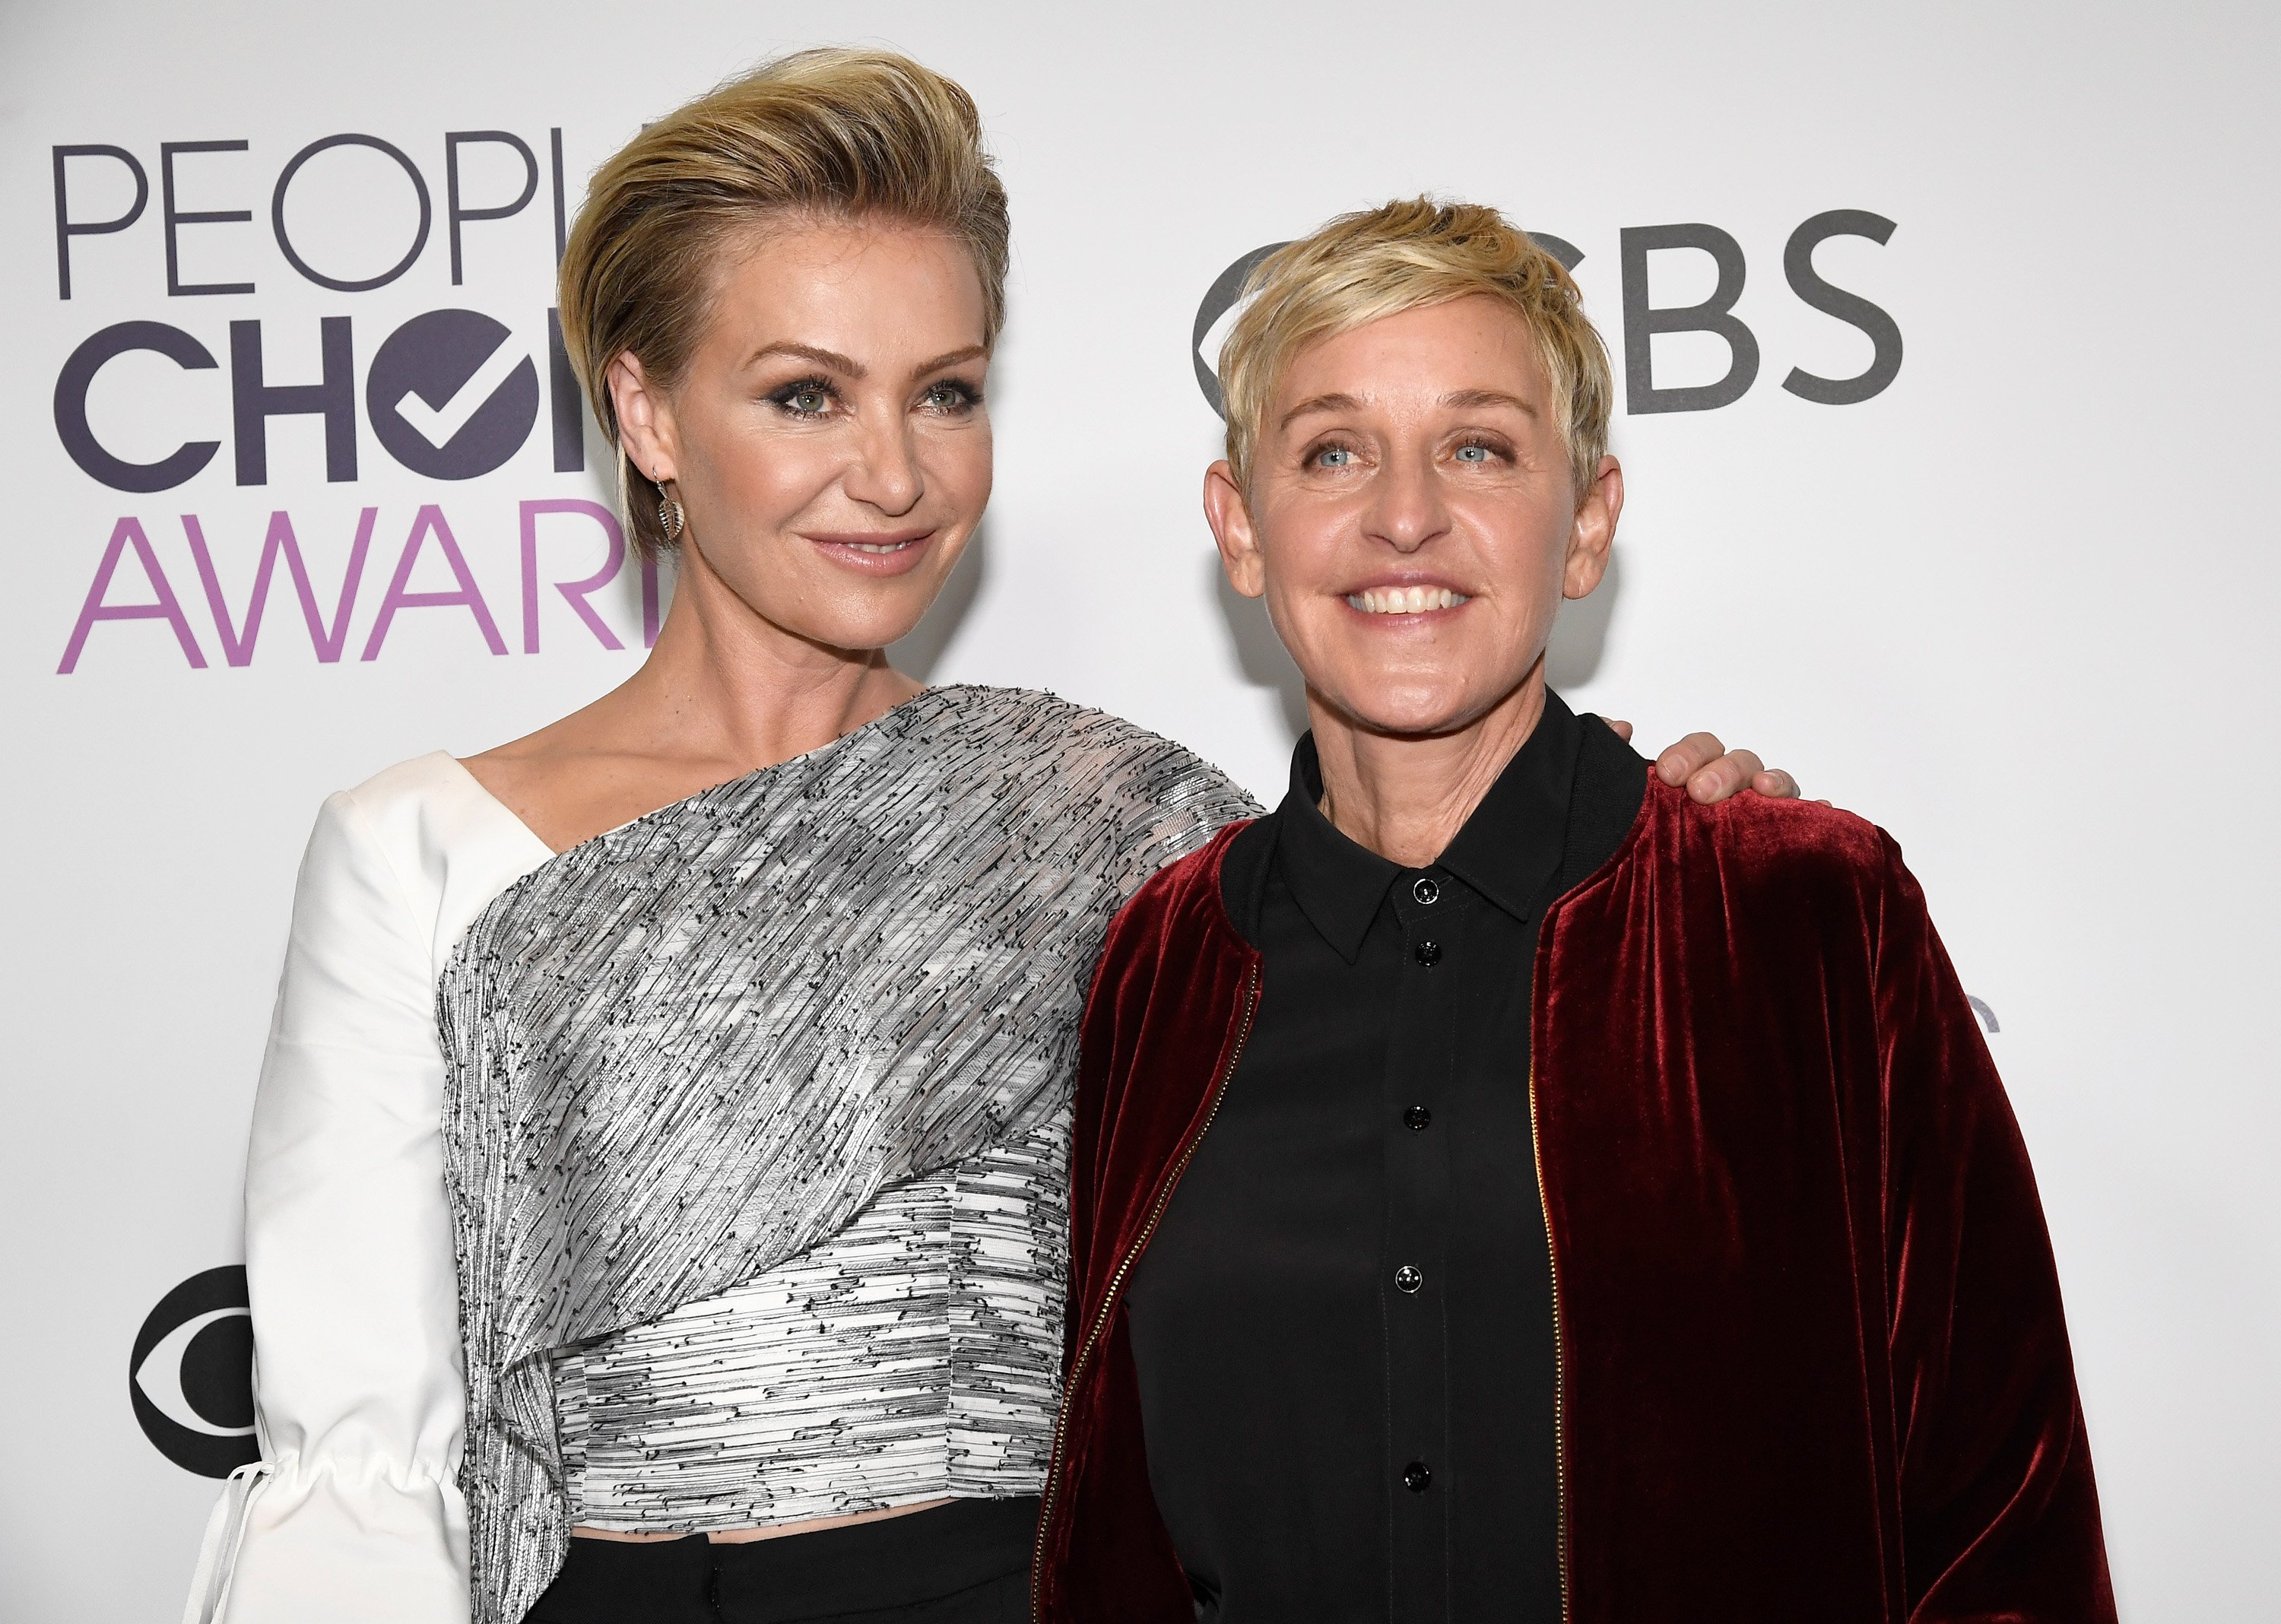 Ellen DeGeneres and wife Portia De Rossi attend the People's Choice Awards in Los Angeles, California on January 18, 2017 | Photo: Getty images